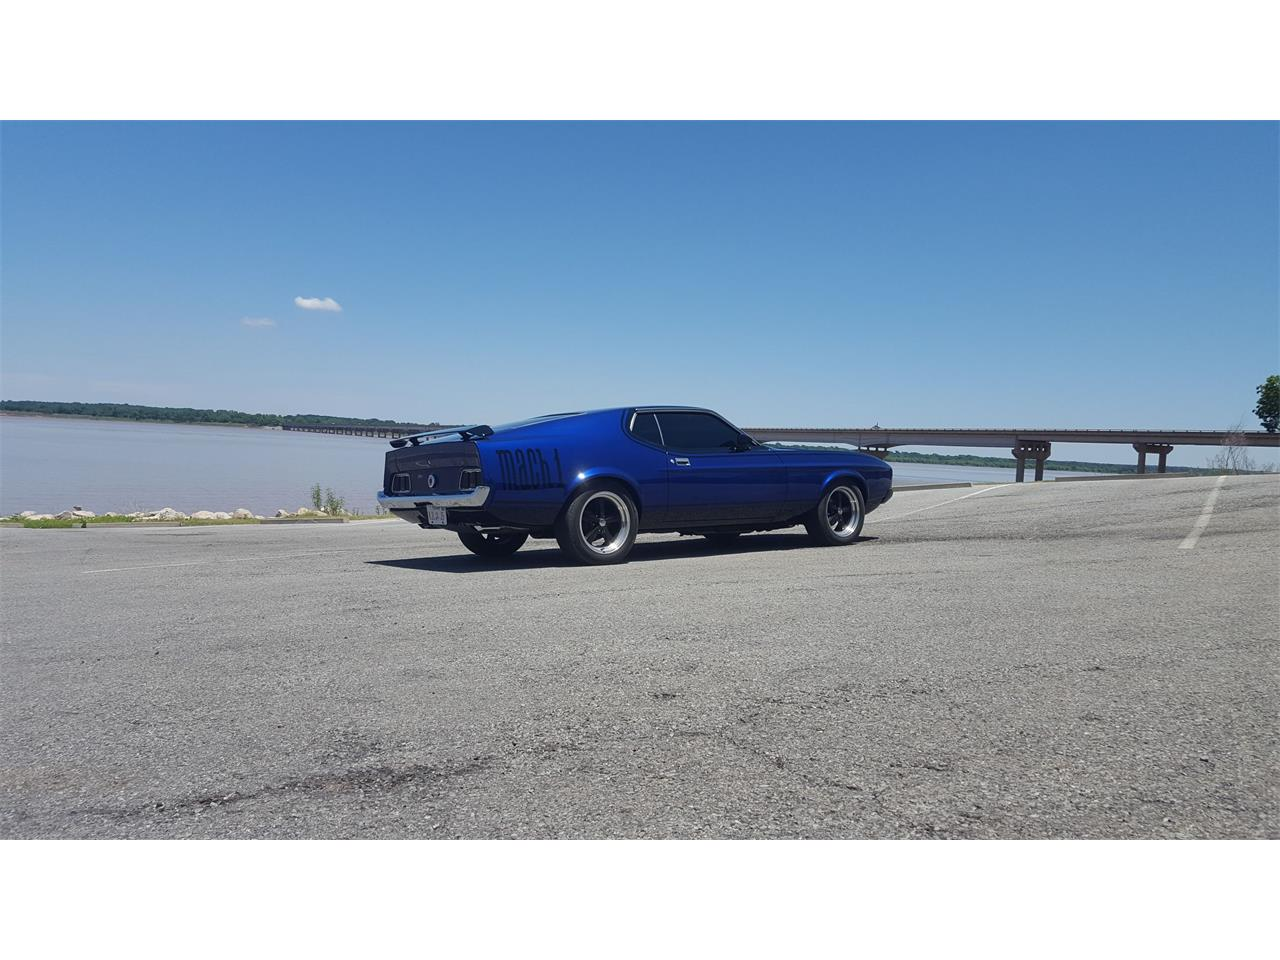 Large Picture of '73 Mustang Mach 1 located in Gordonville Texas Offered by a Private Seller - LBYV